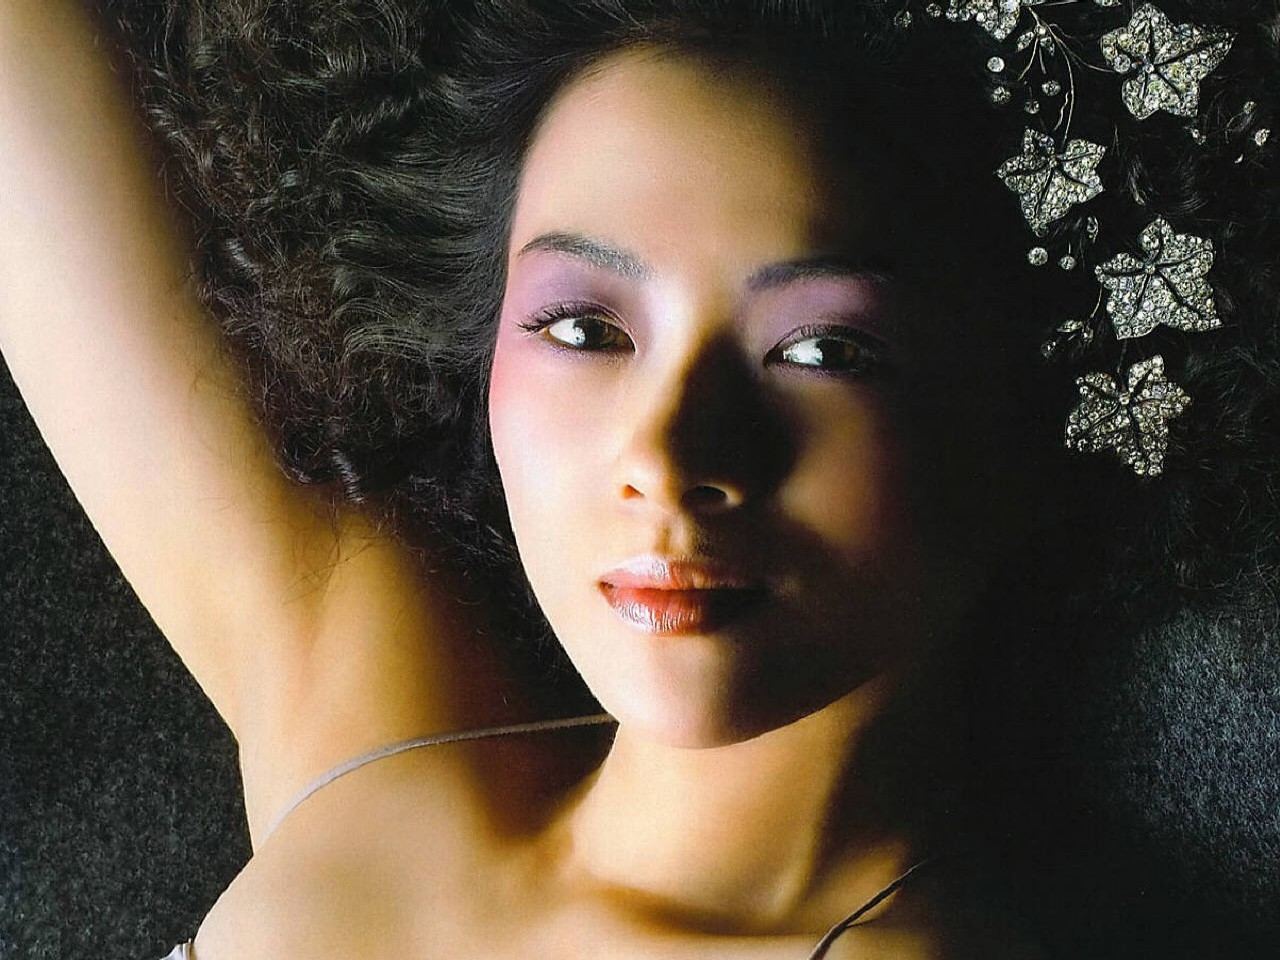 Wallpaper di Zhang Ziyi con un make up insolito